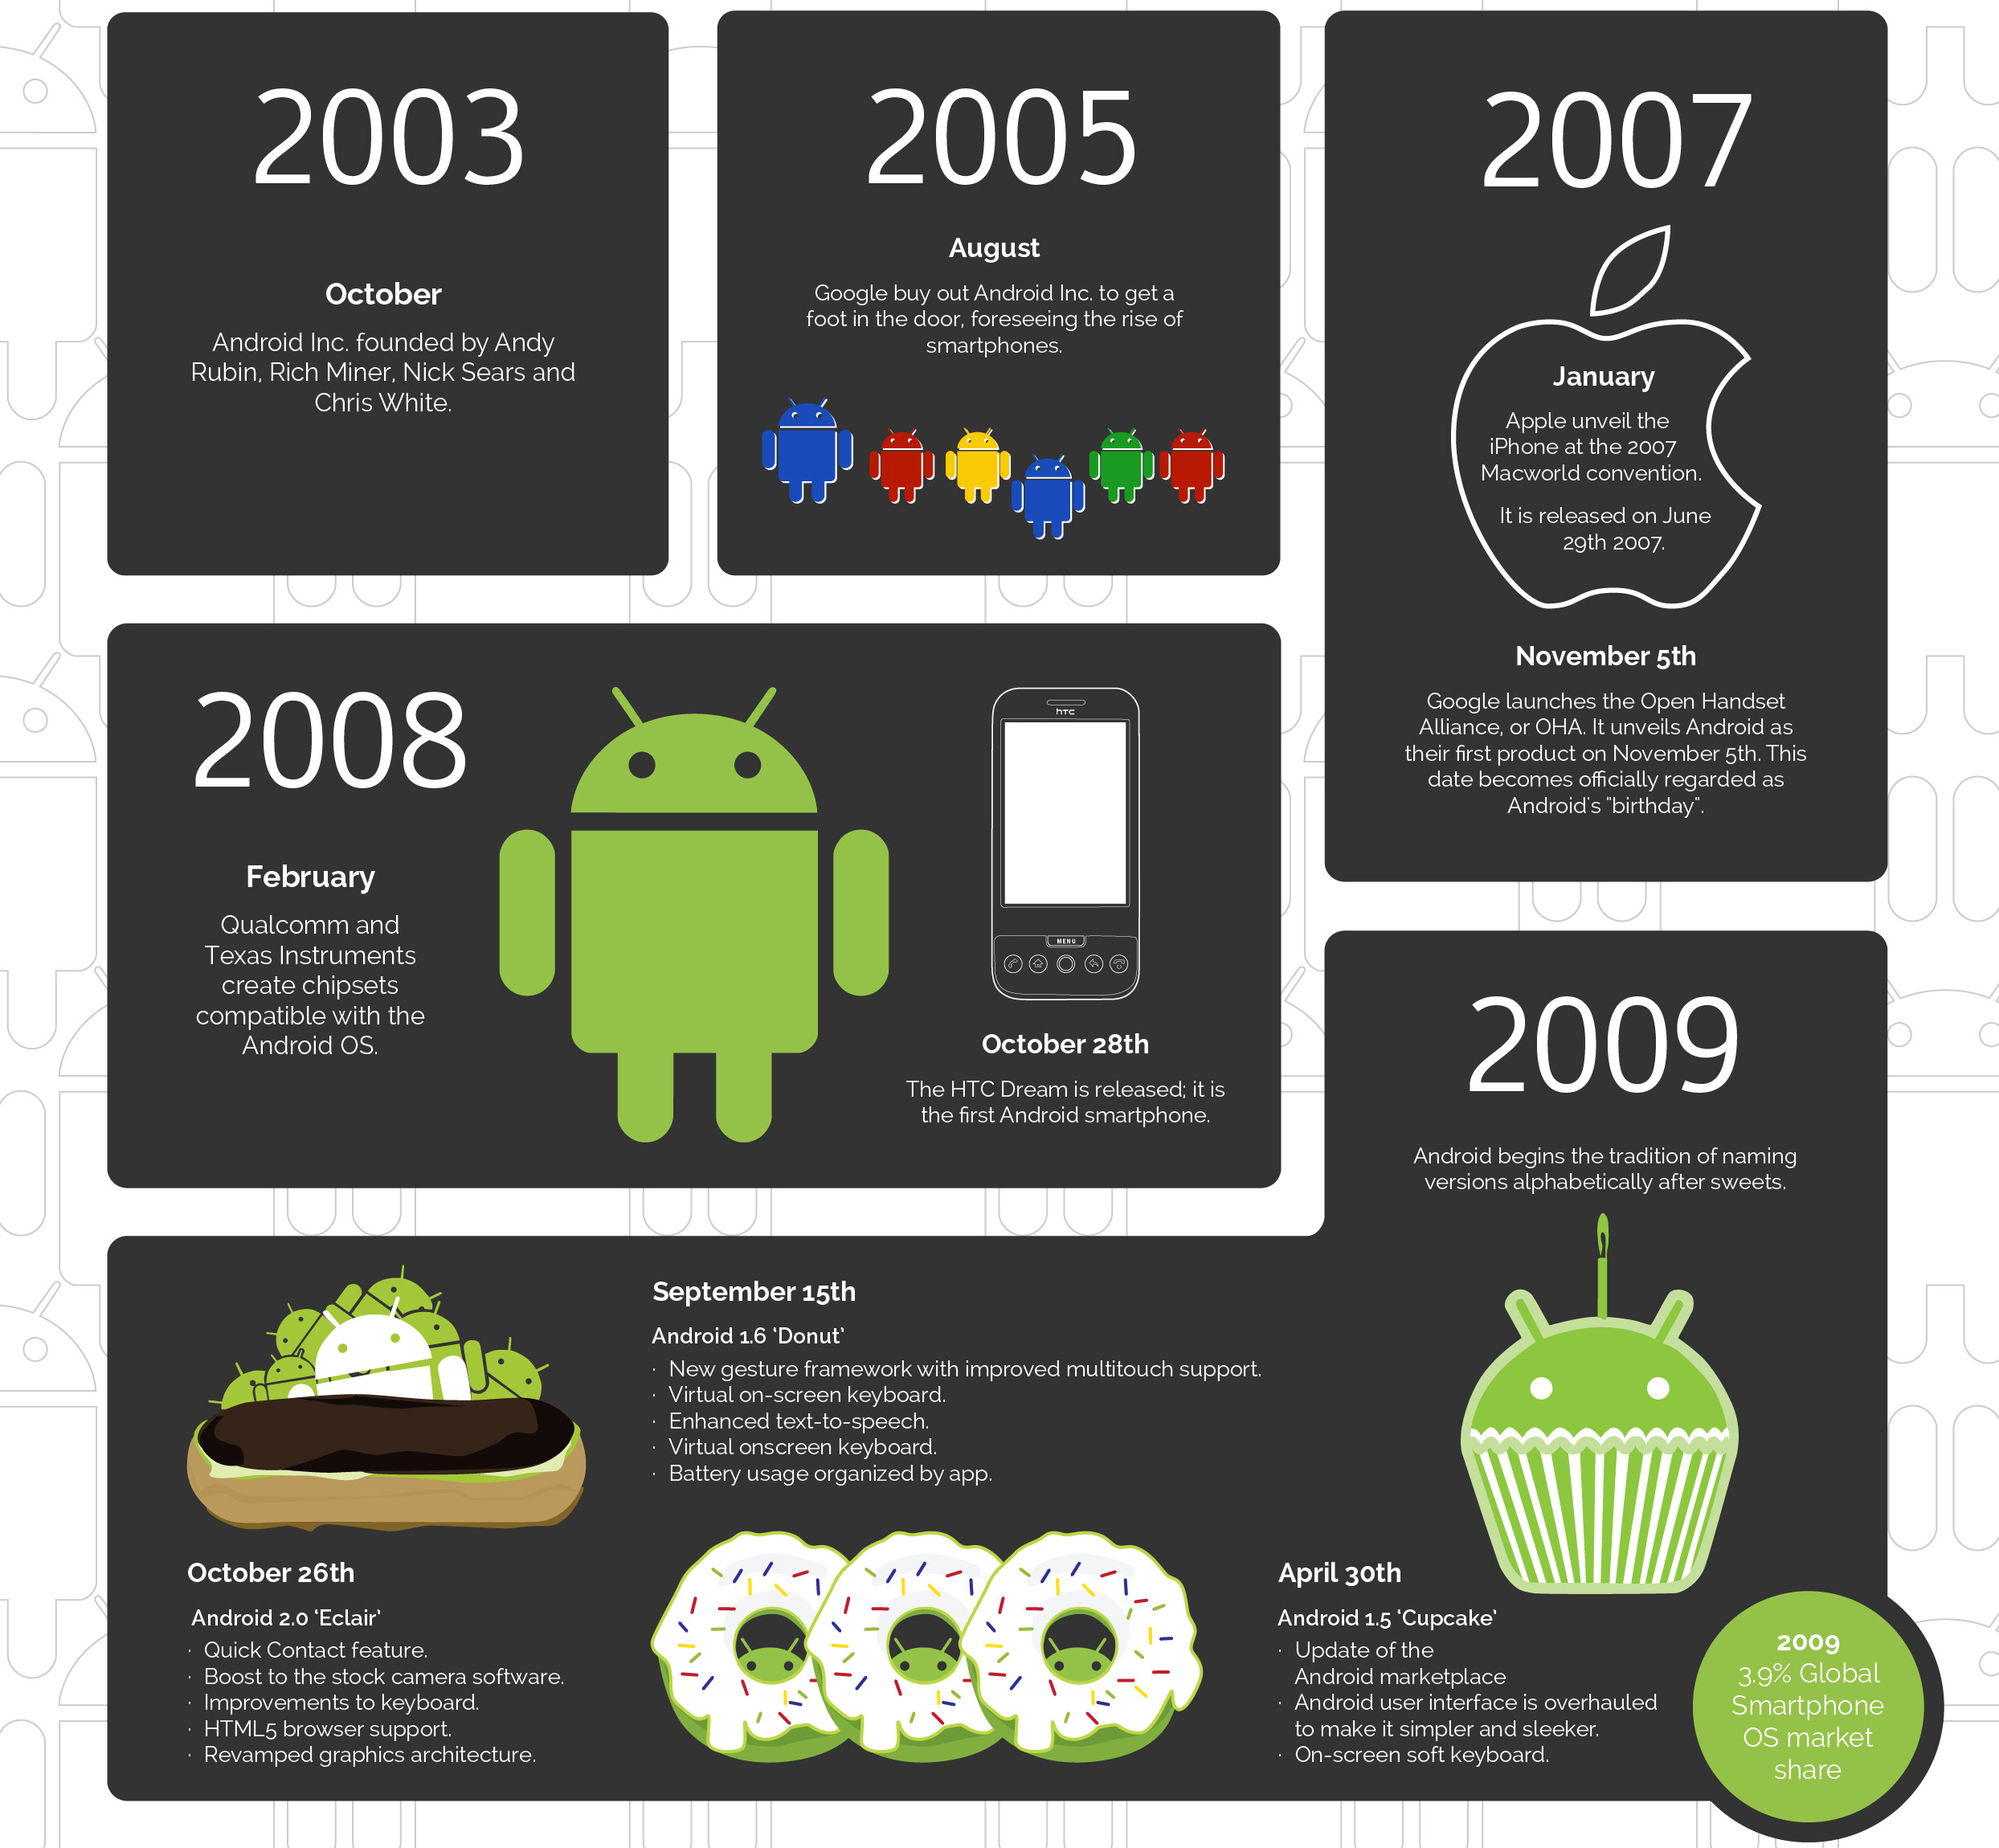 From Cupcake to Marshmallow: the sweet history of Android